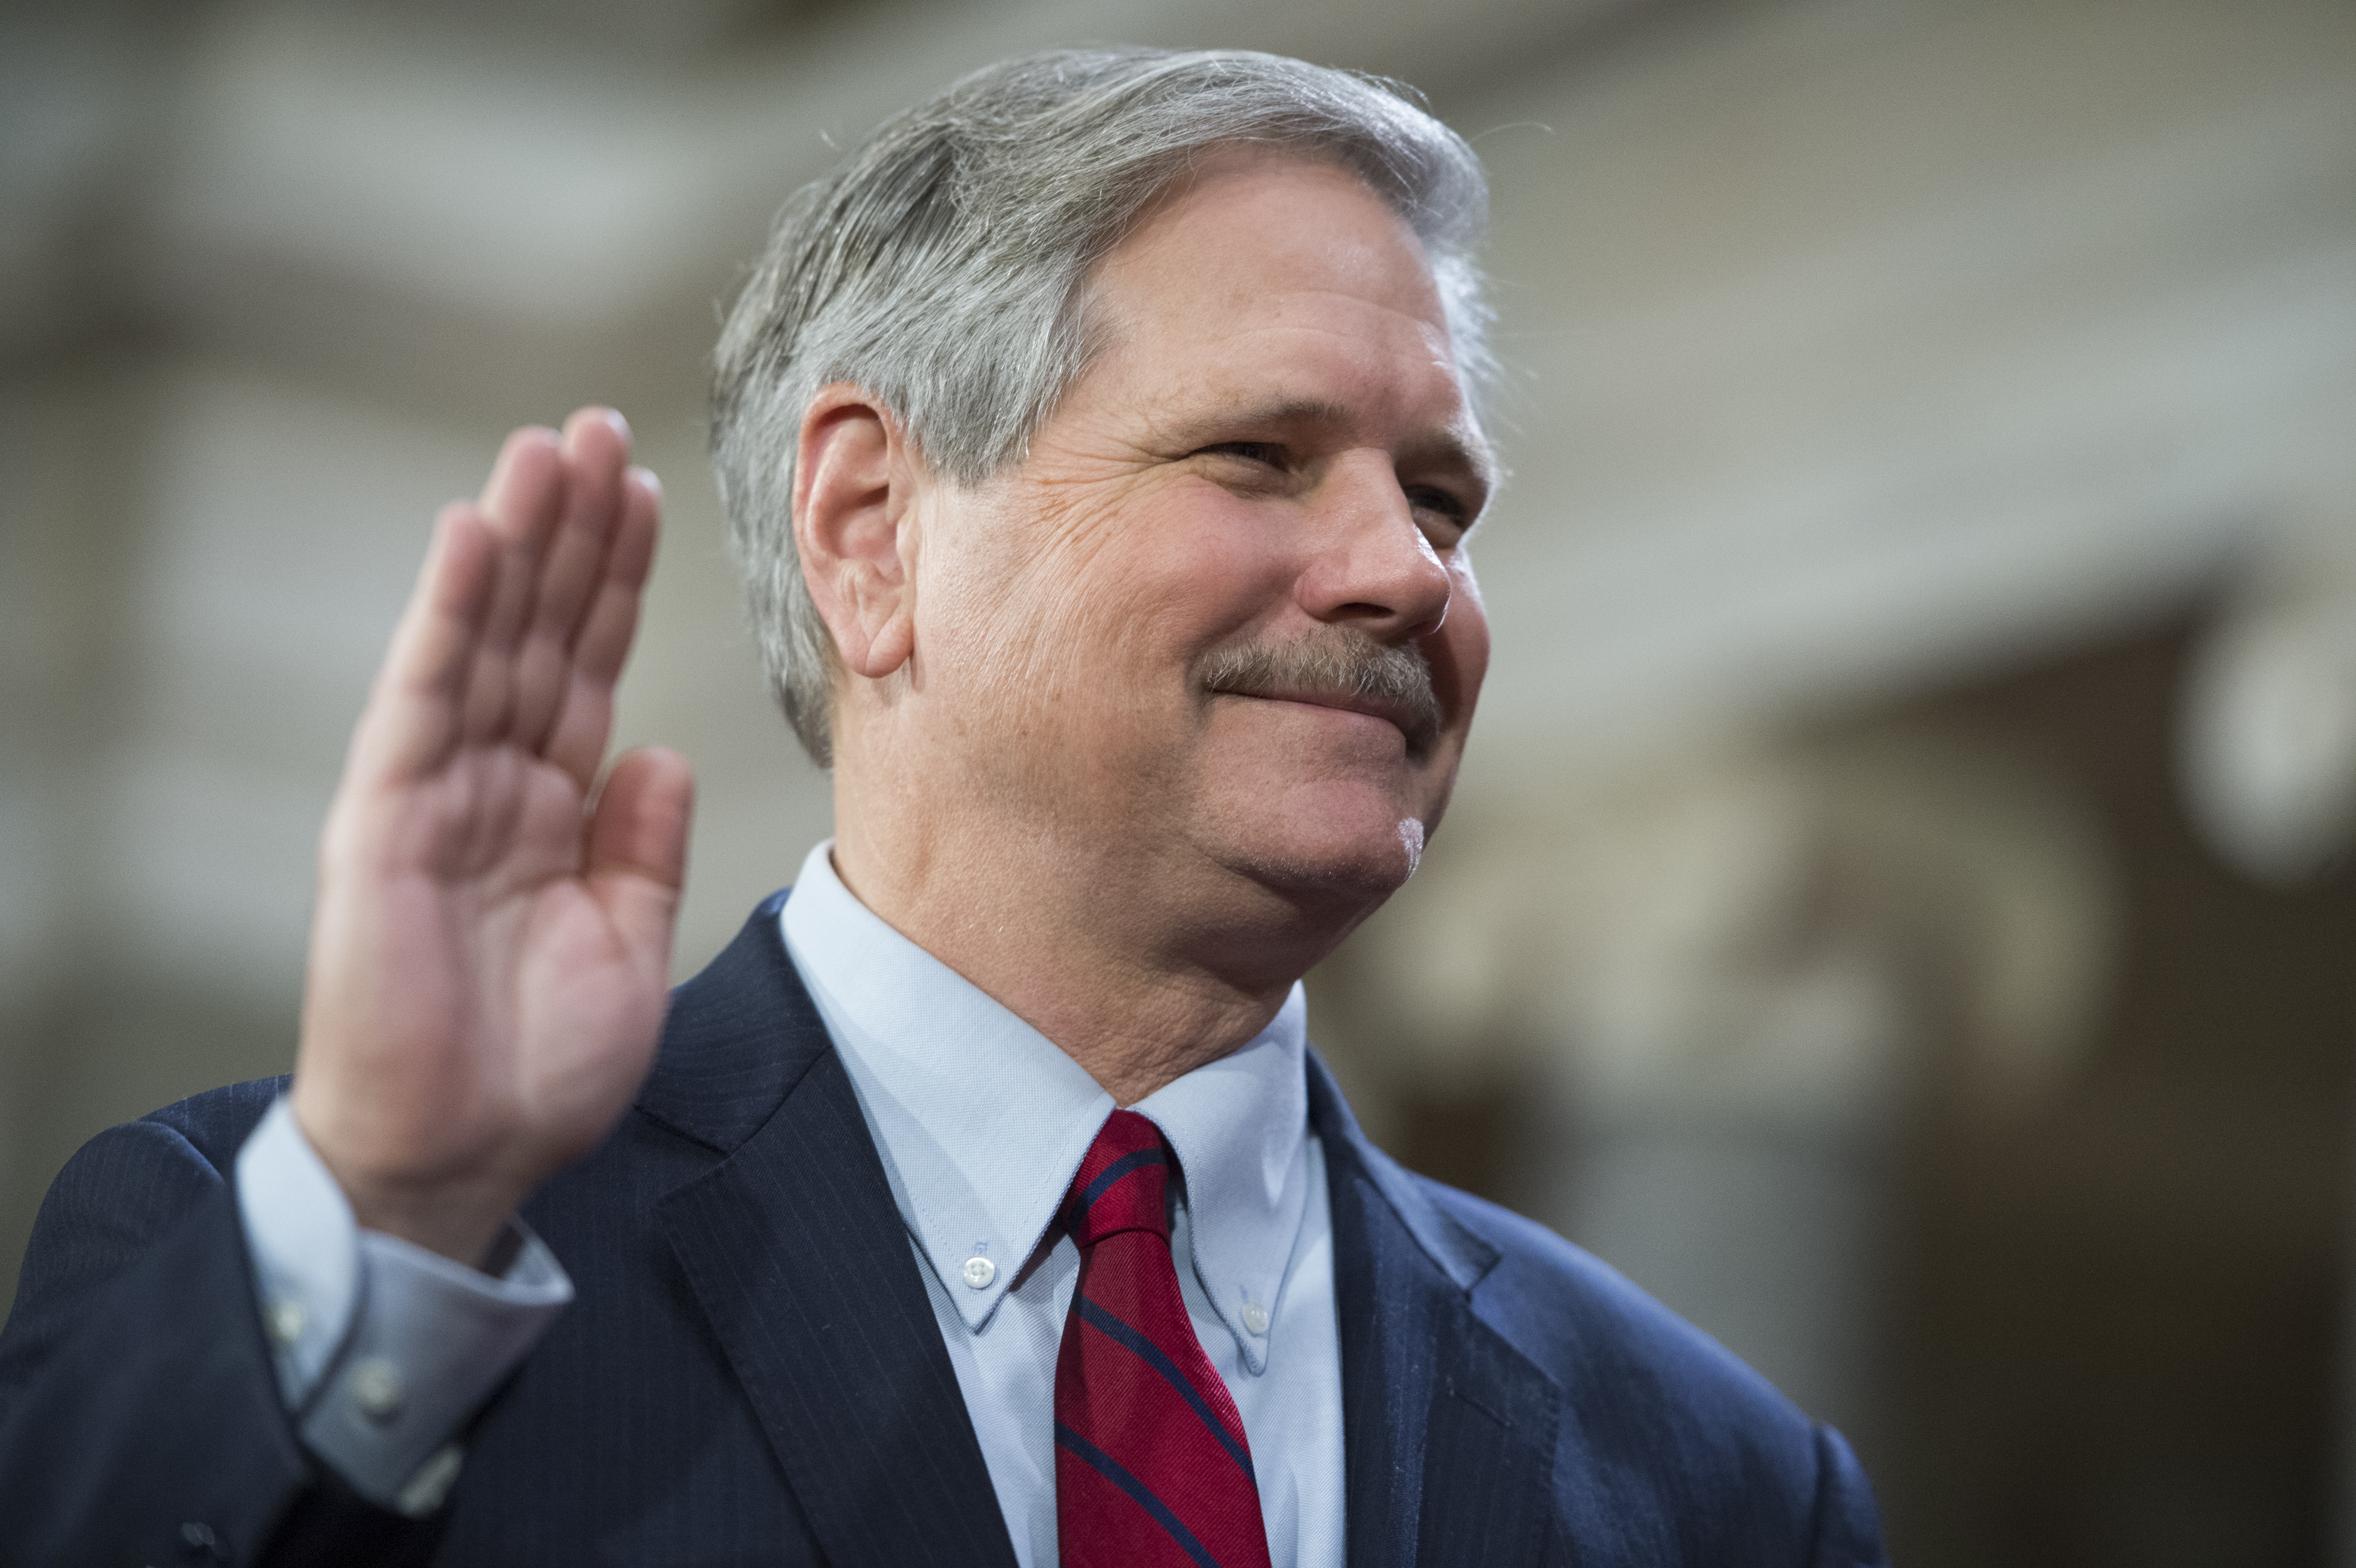 Sen. John Hoeven, R-N.D., is administered an oath by Vice President Joe Biden during a swearing-in ceremony in the Capitol's Old Senate Chamber, January 03, 2016.